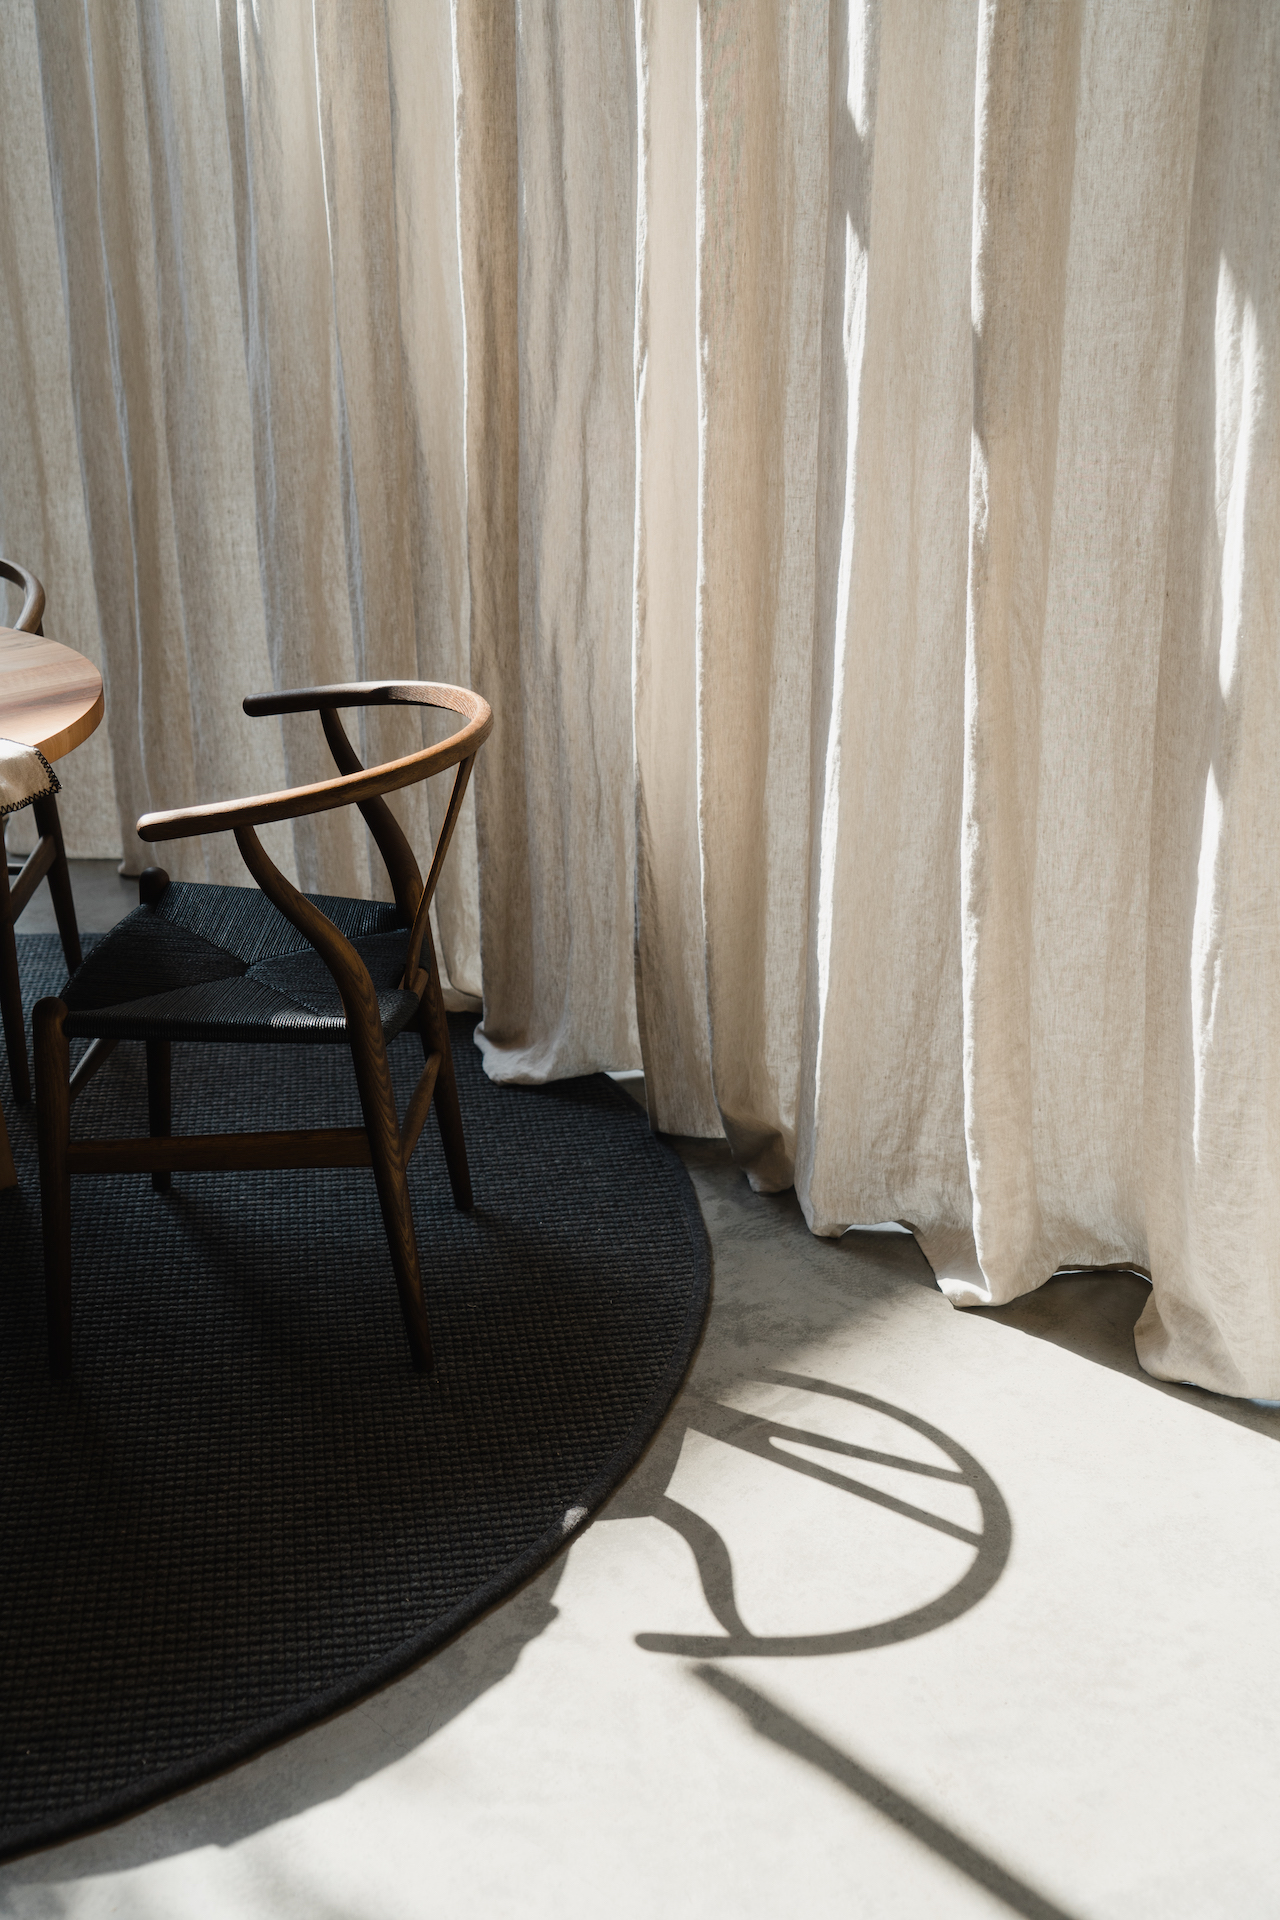 Ambient shot of Wishbone Chair in natural light